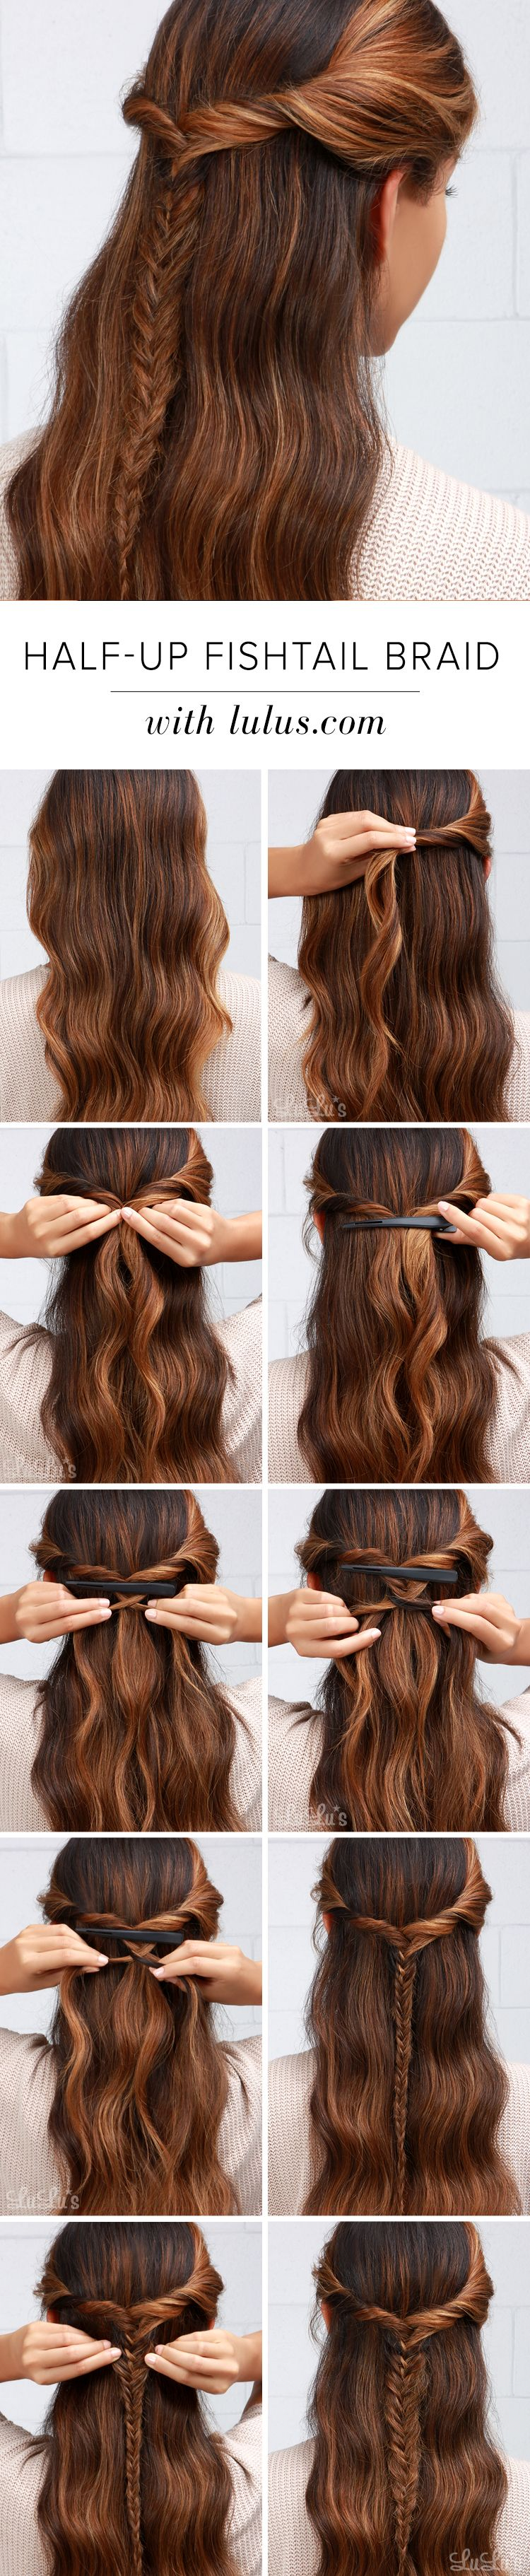 fish hair style lulus how to half up fishtail braid easy 3461